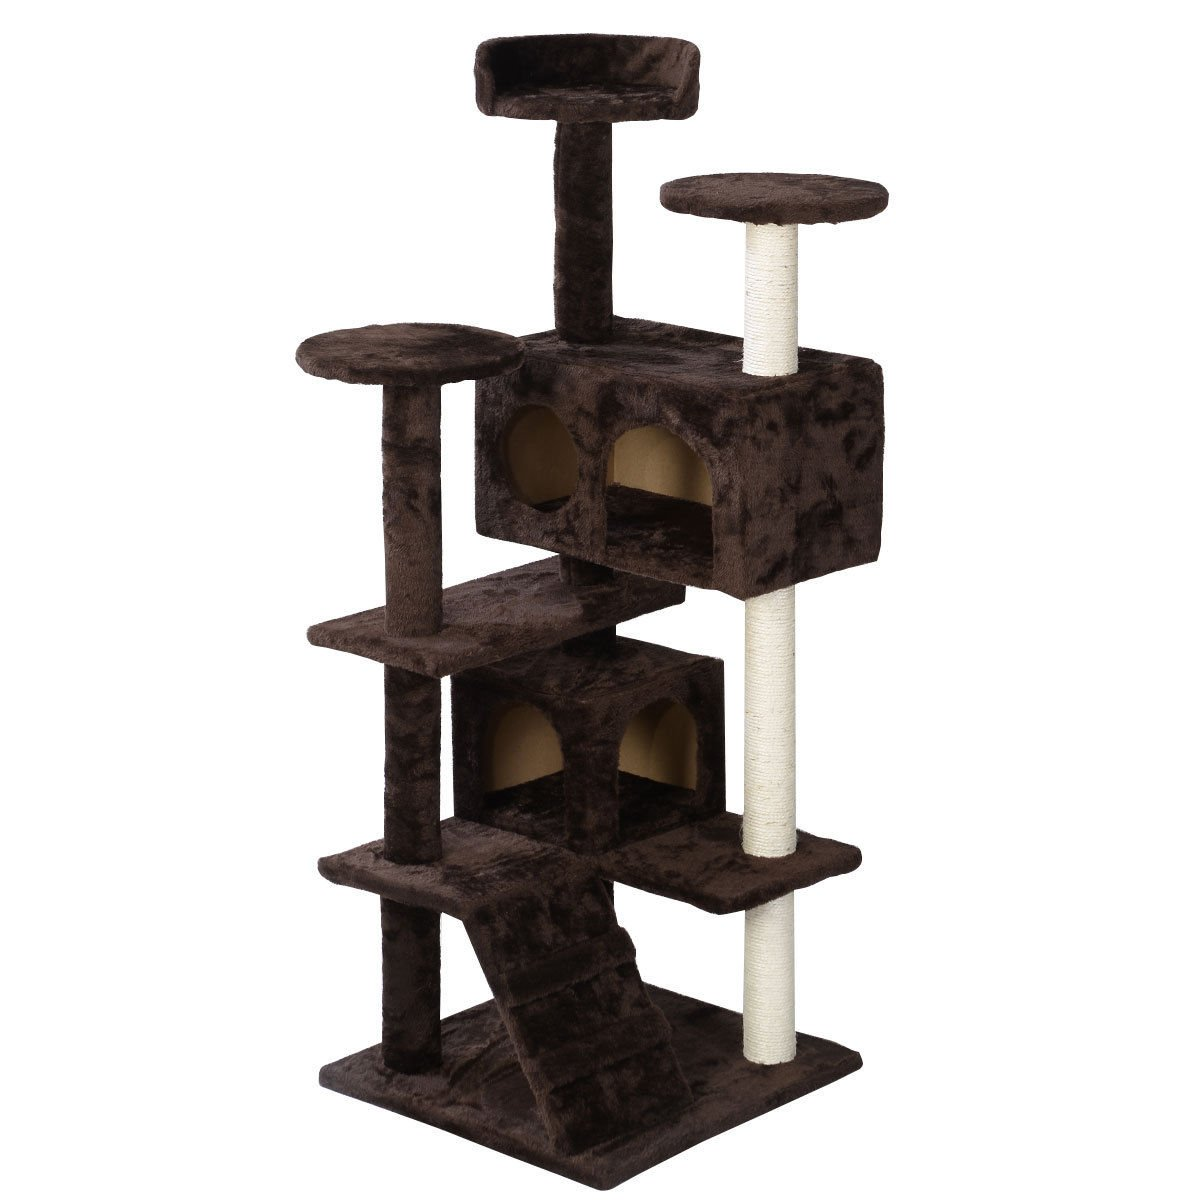 Eight24hours New Cat Tree Tower Condo Furniture Scratch Post Kitty Pet House Play Brown